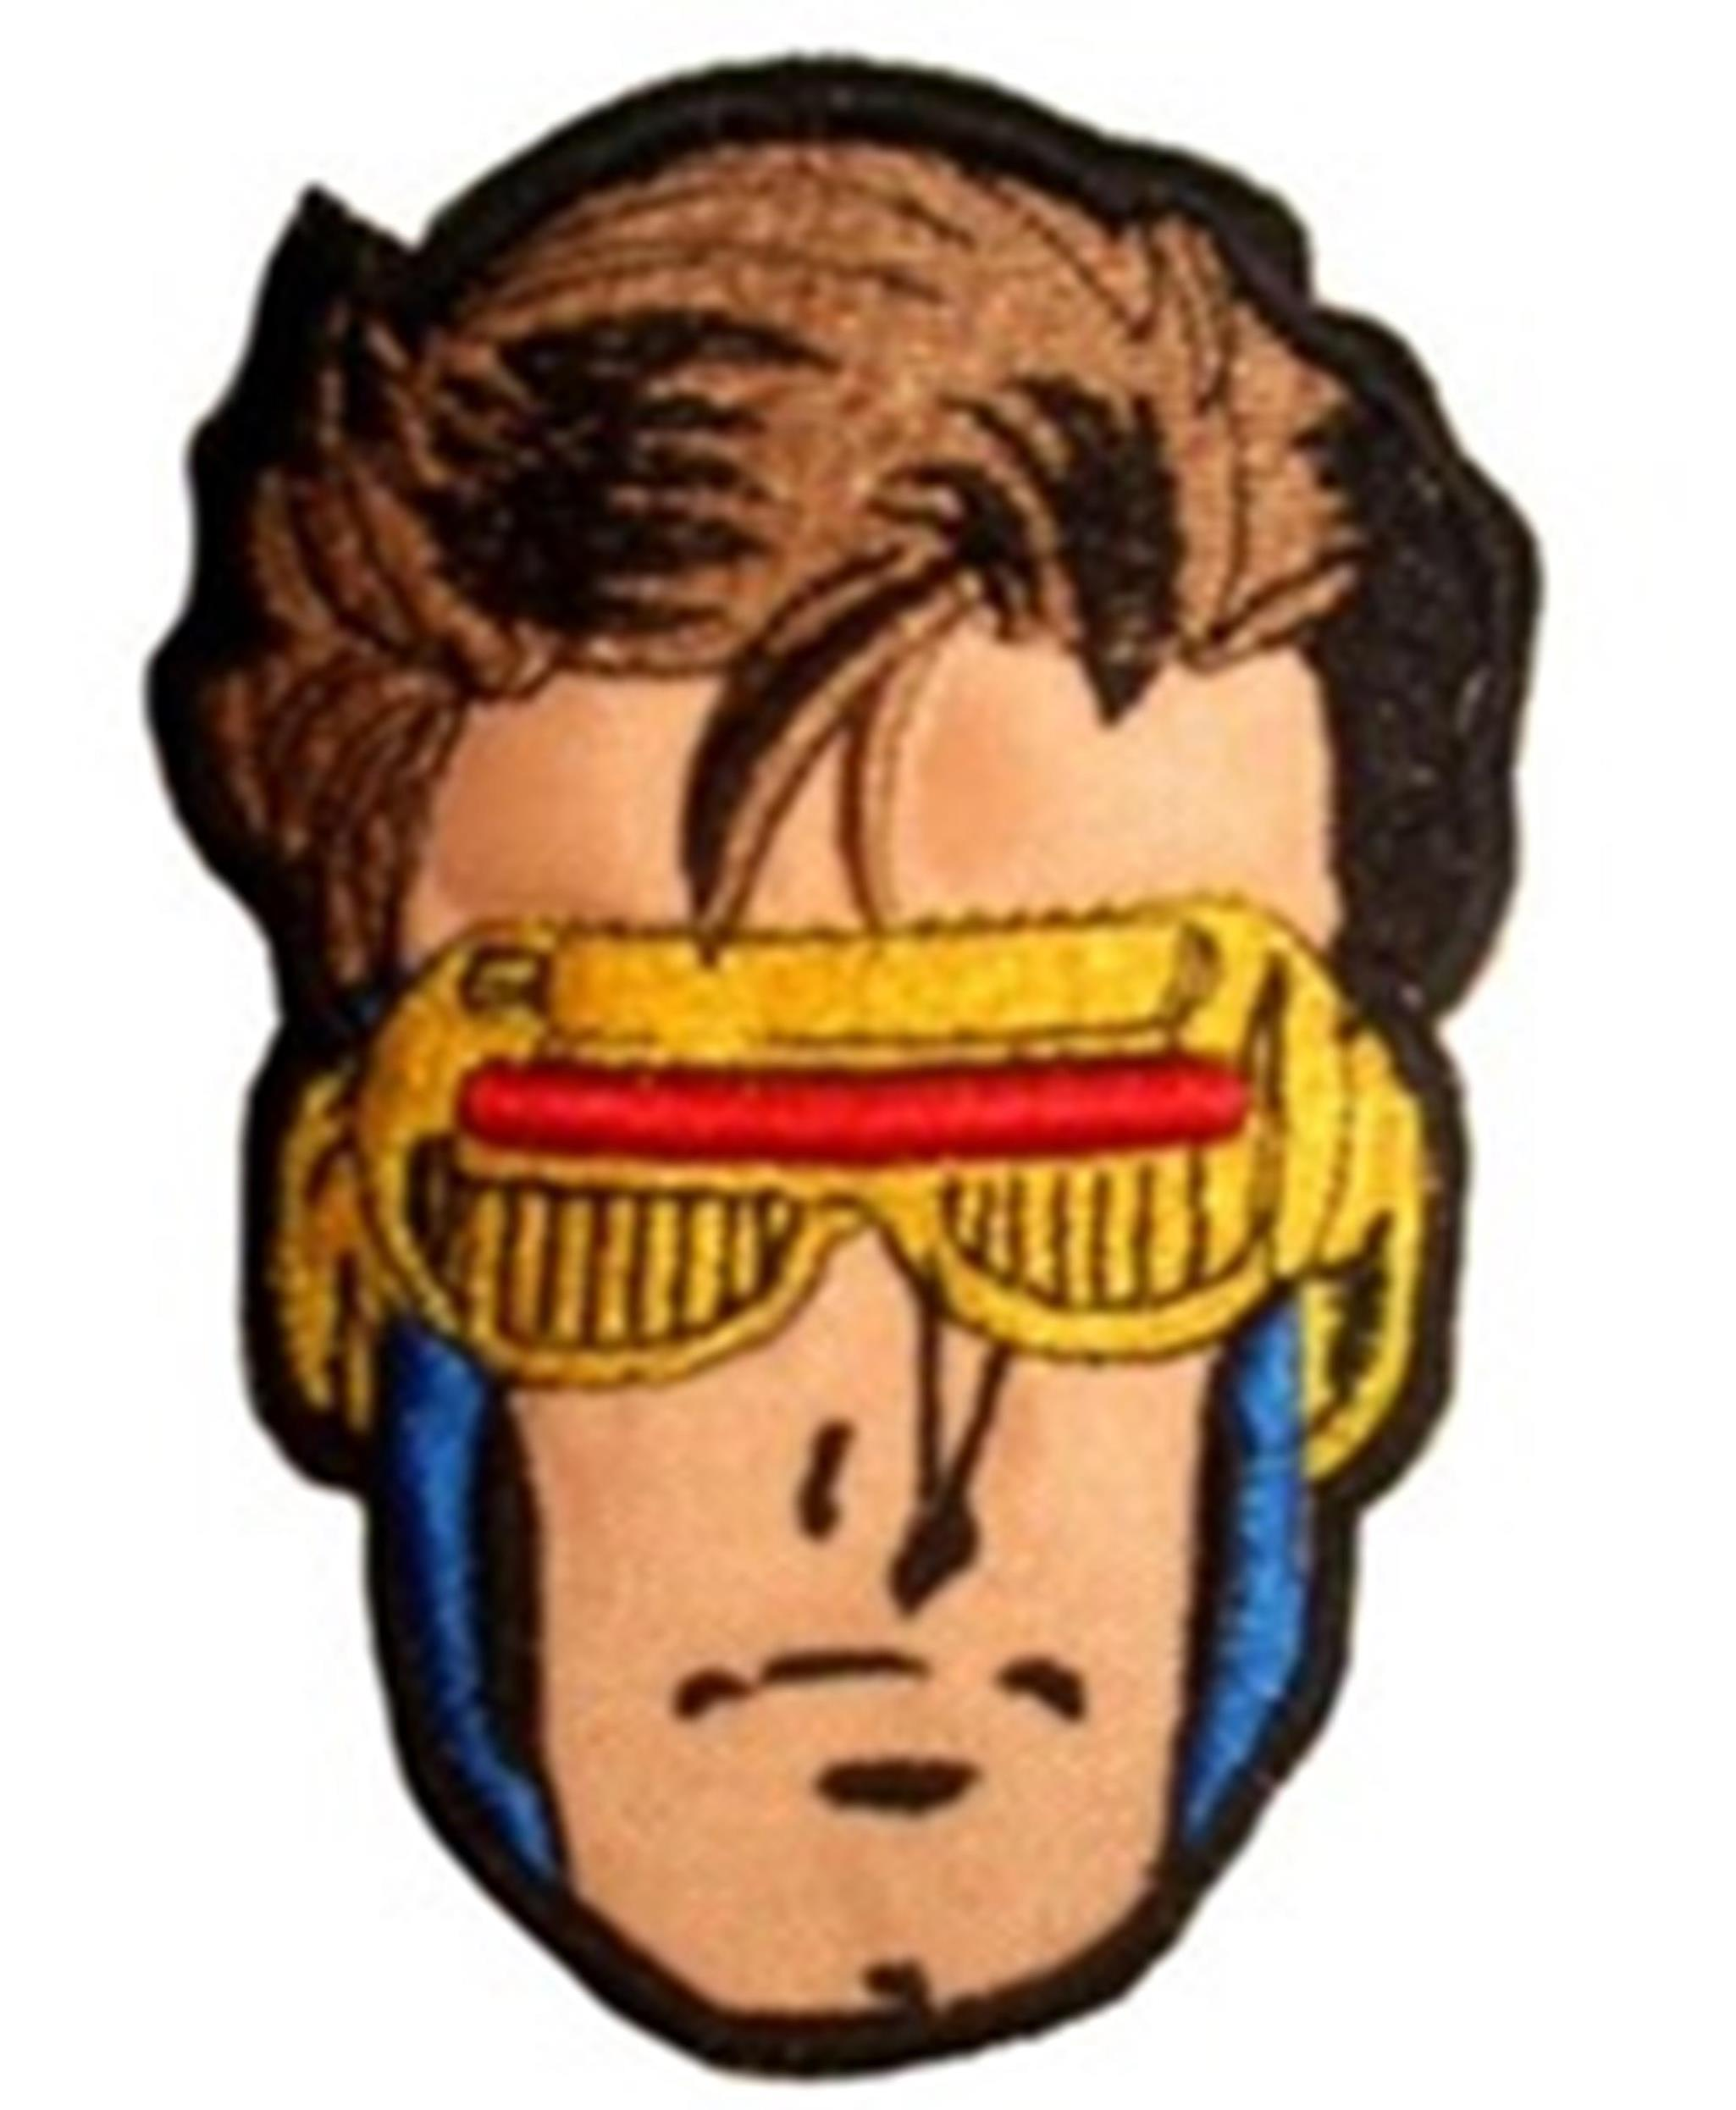 X-MEN CYCLOPS IRON ON EMBROIDERED PATCH APPLIQUE Marvel Comic Book Super Hero